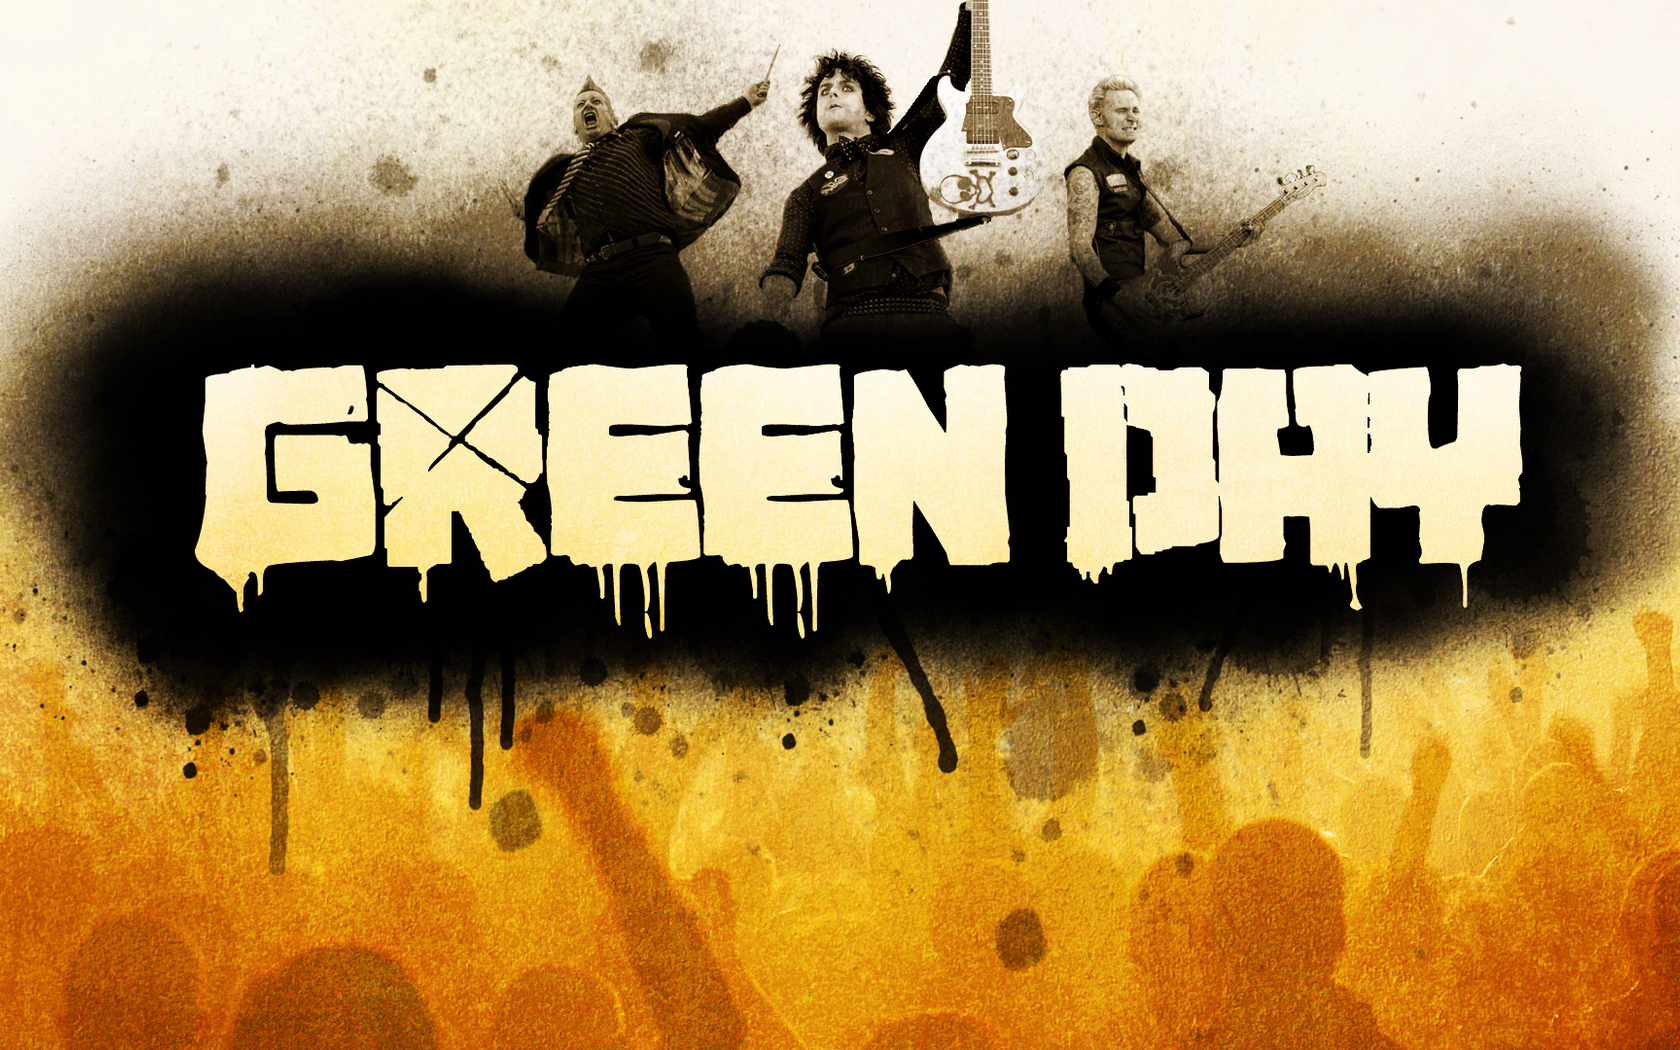 Green Day Rock Band Wallpapers - 1680x1050 - 1983677